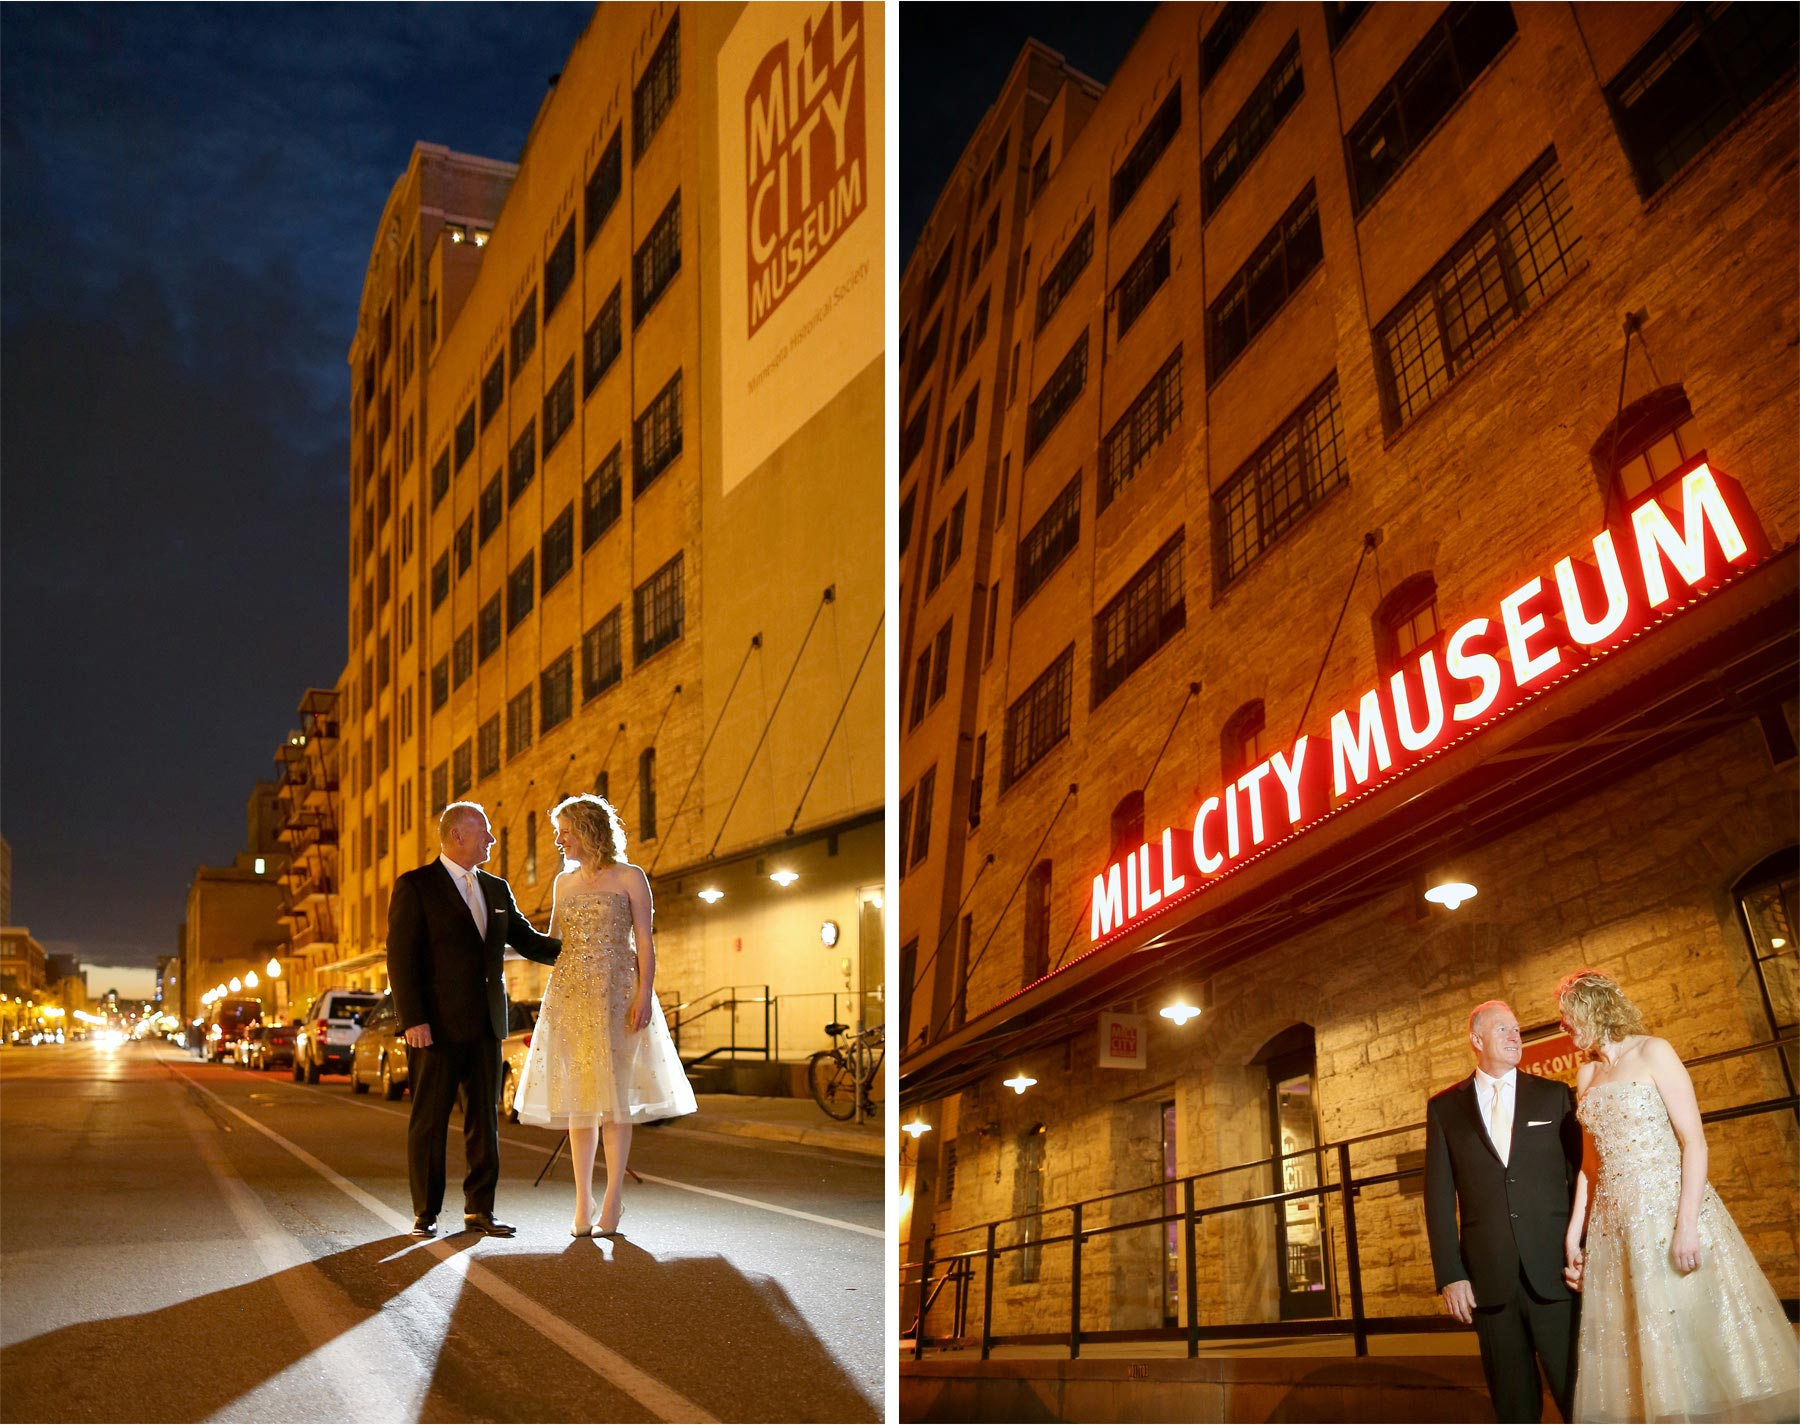 18-Minneapolis-Minnesota-Wedding-Photographer-by-Andrew-Vick-Photography-Spring-Mill-City-Museum-Downtown-Bride-Groom-Sign-Night-Dannette-and-Darren.jpg